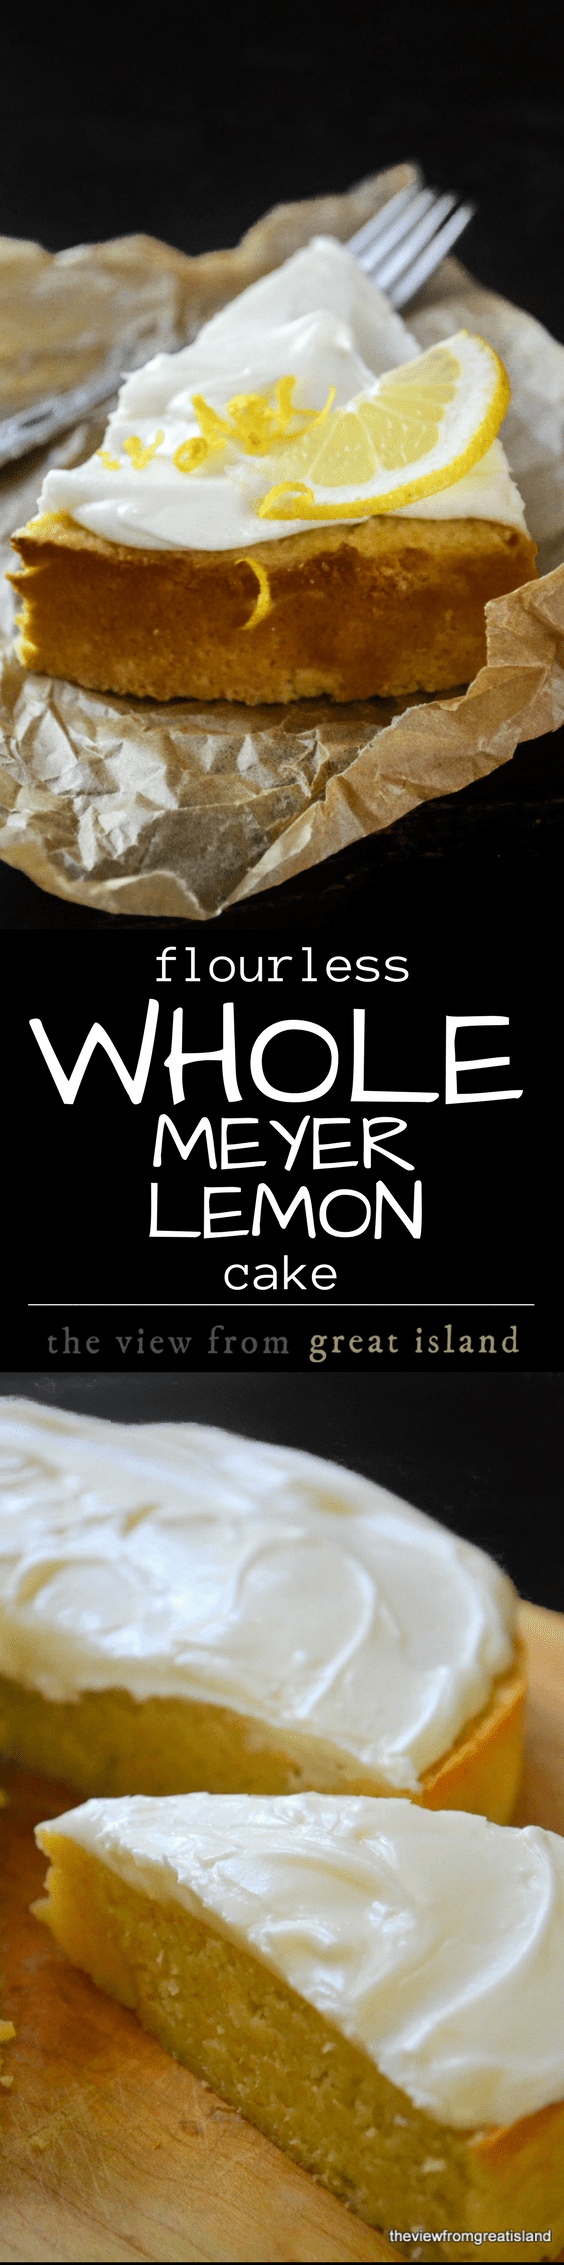 This naturally gluten free Flourless Whole Meyer Lemon cake is made with the entire lemon, peel and all, in the Mediterranean tradition, it has a tender texture and an explosive lemon flavor. | gluten free | lemon cake | flourless cakes | dessert